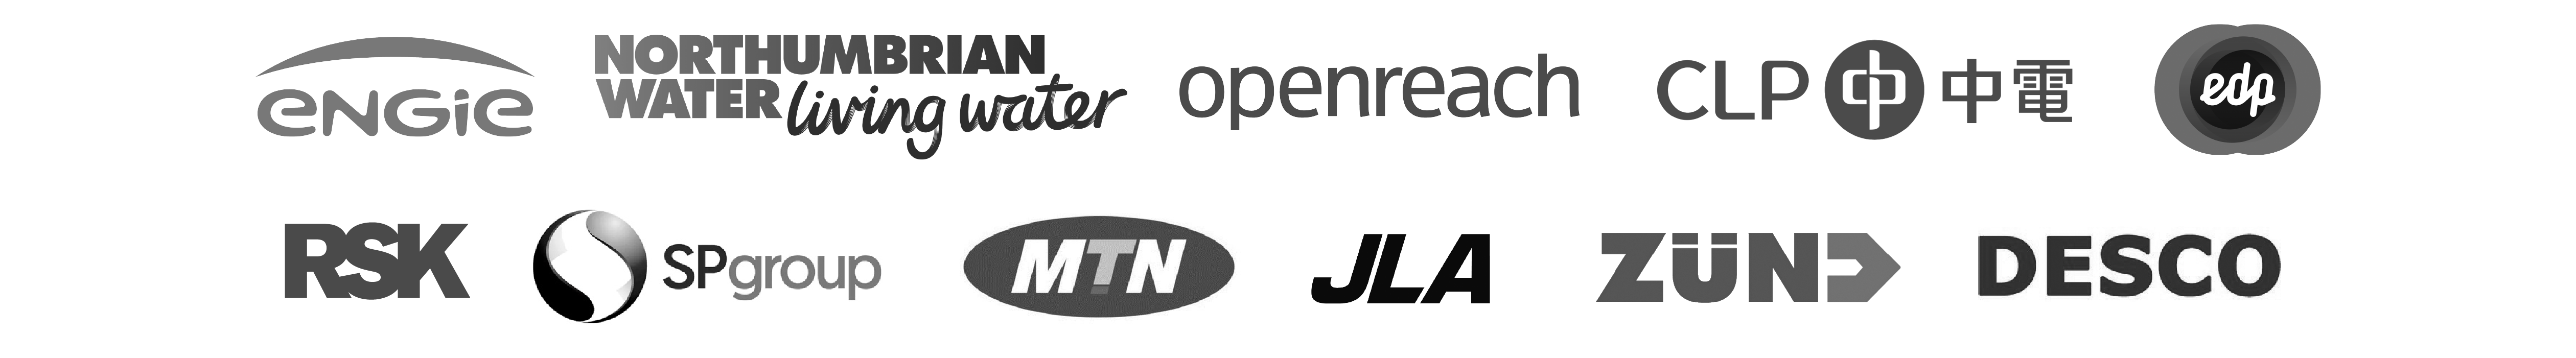 Our clients: Engie, RSK, Northumbrain Water, Openreach, CLP, edp, SP Group, JLA, ZUND, DESCO and MTN